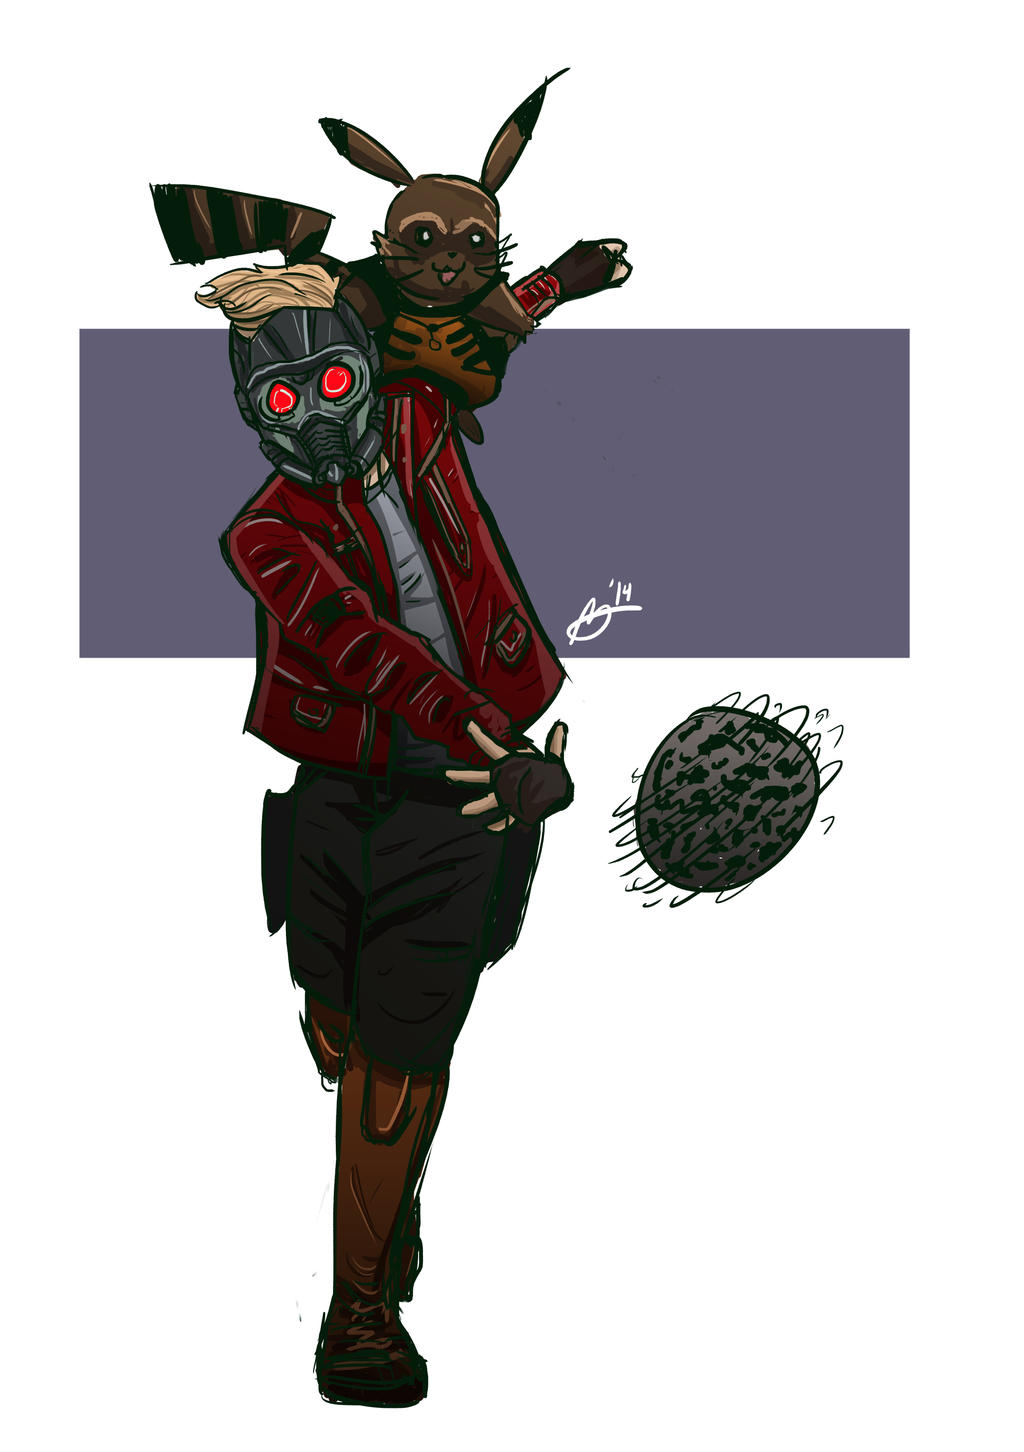 Star Lord And Rocket Raccoon By Timothygreenii On Deviantart: Ash Lord/Rocket Pikachu By